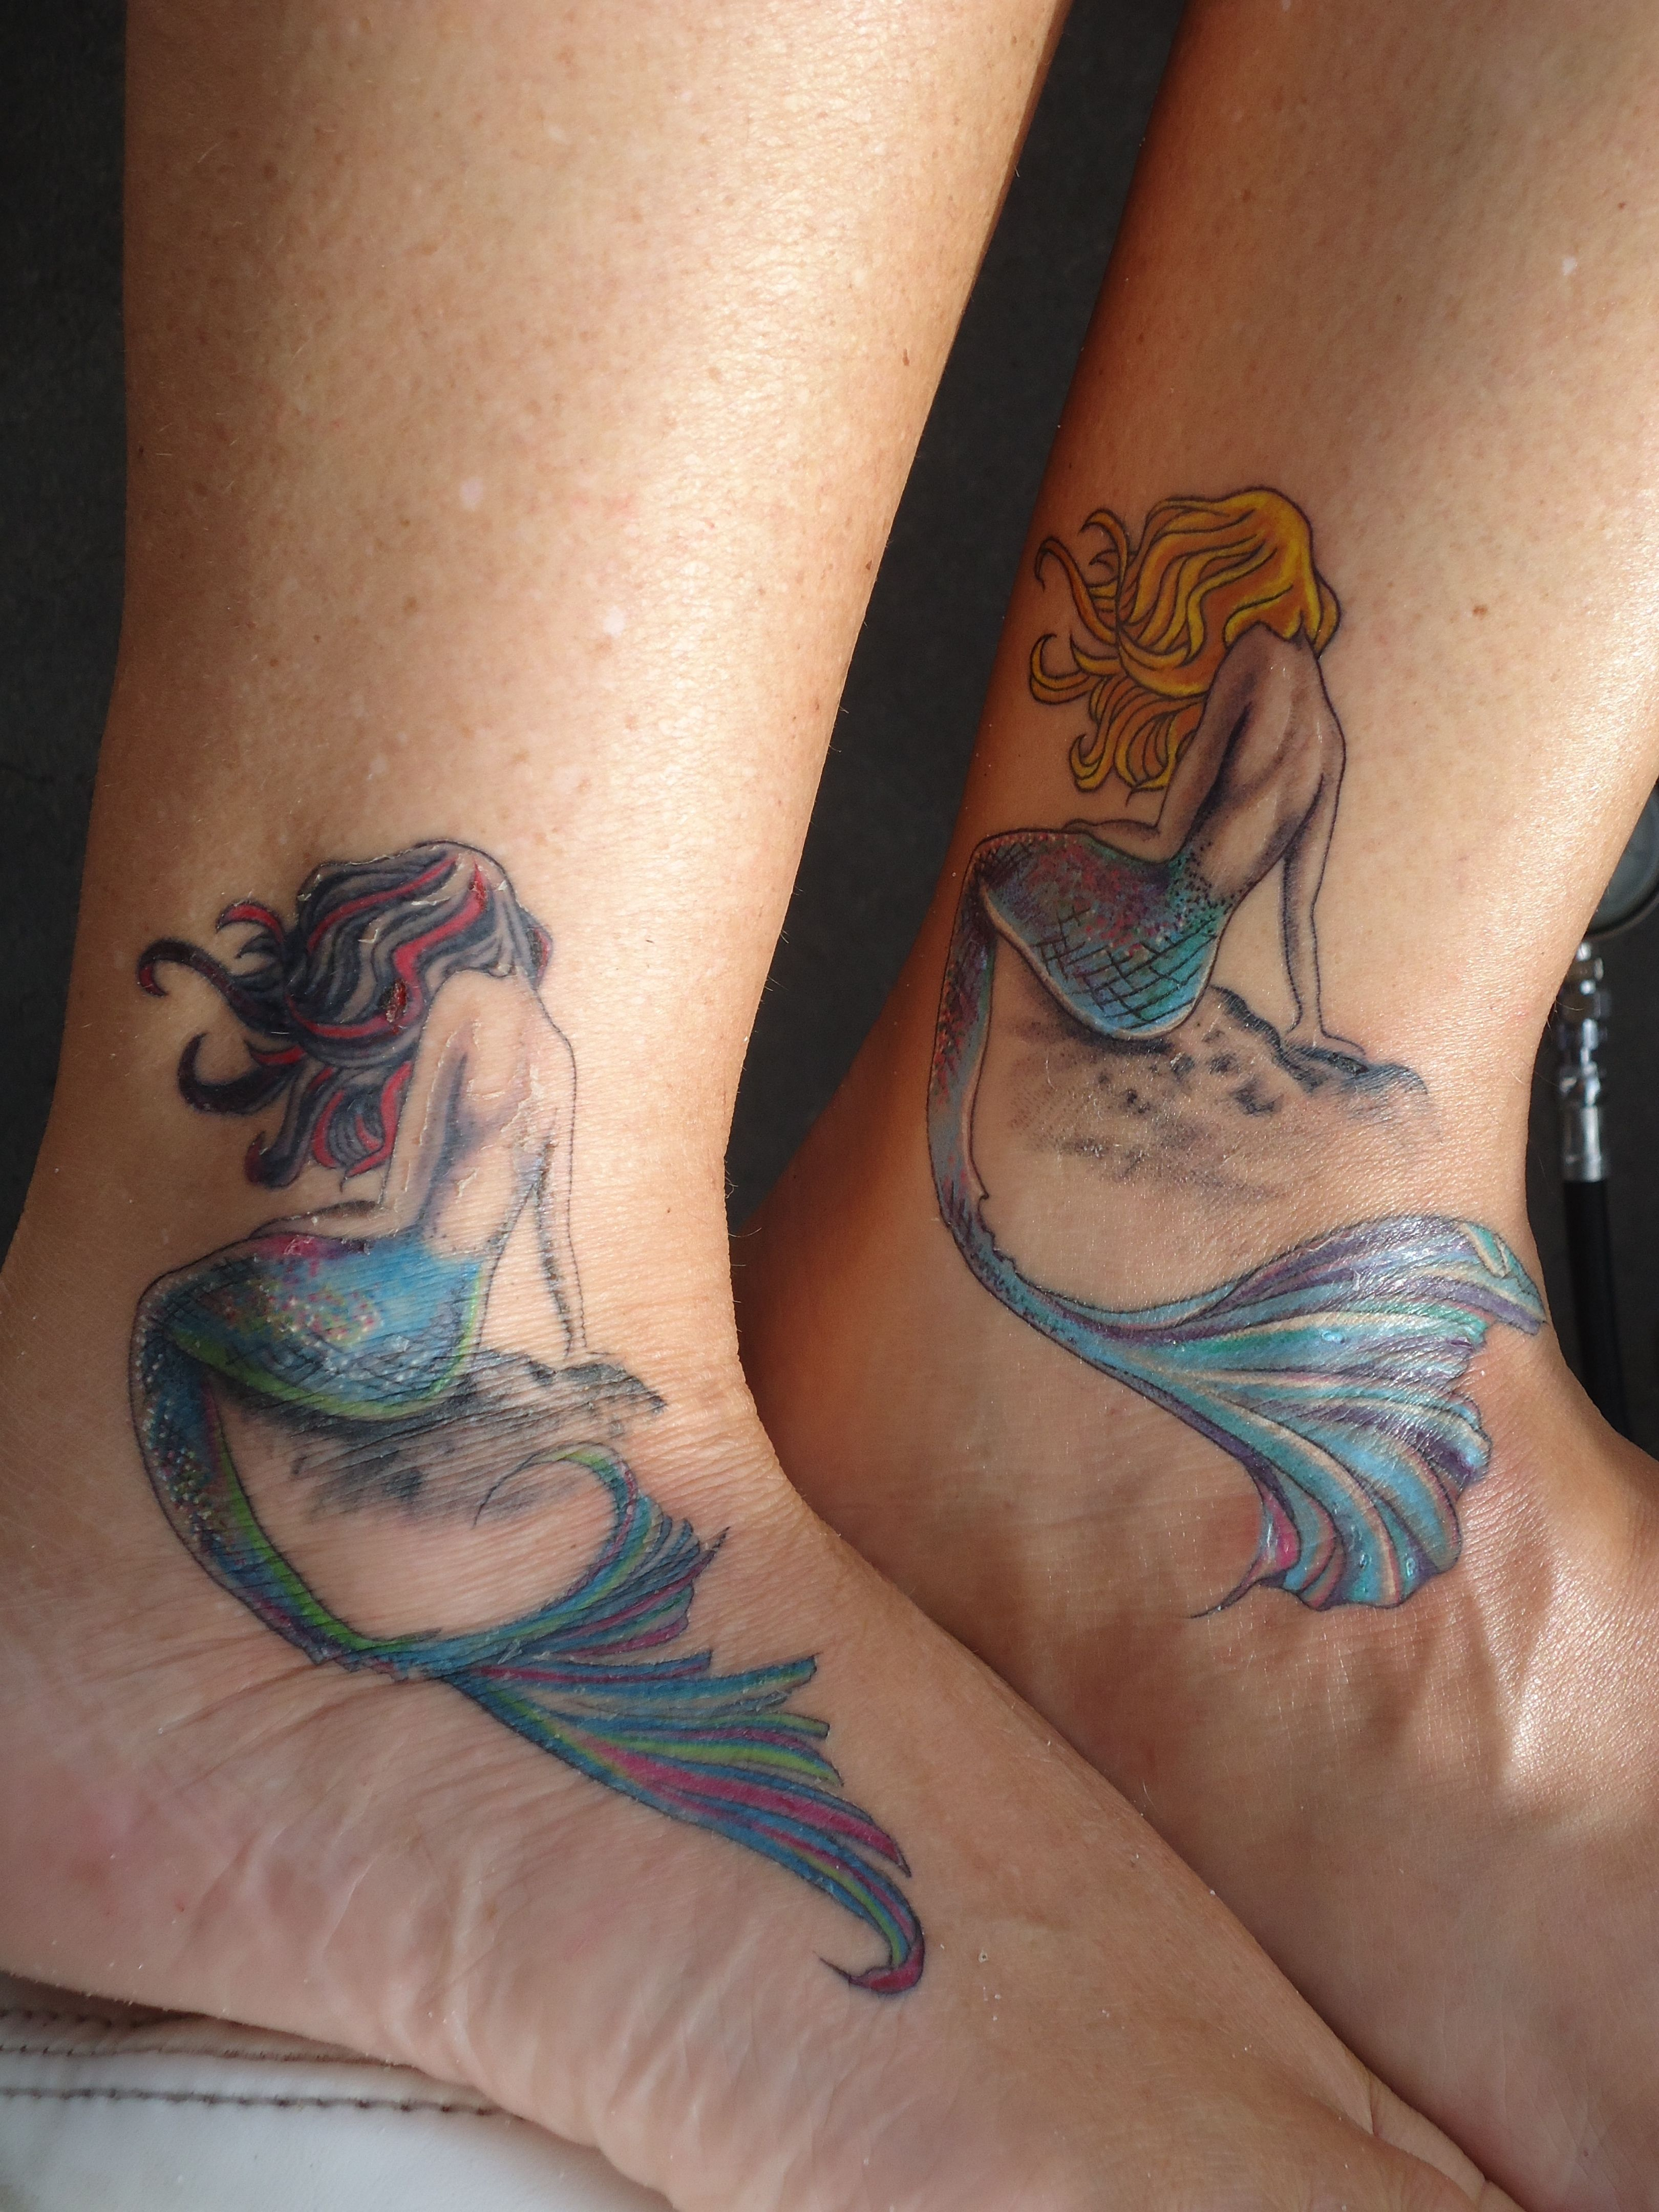 Matching Tattoo Ideas For Couples Mermaid Tattoo And Tatting - 30 unique pisces tattoos design ideas boys girls